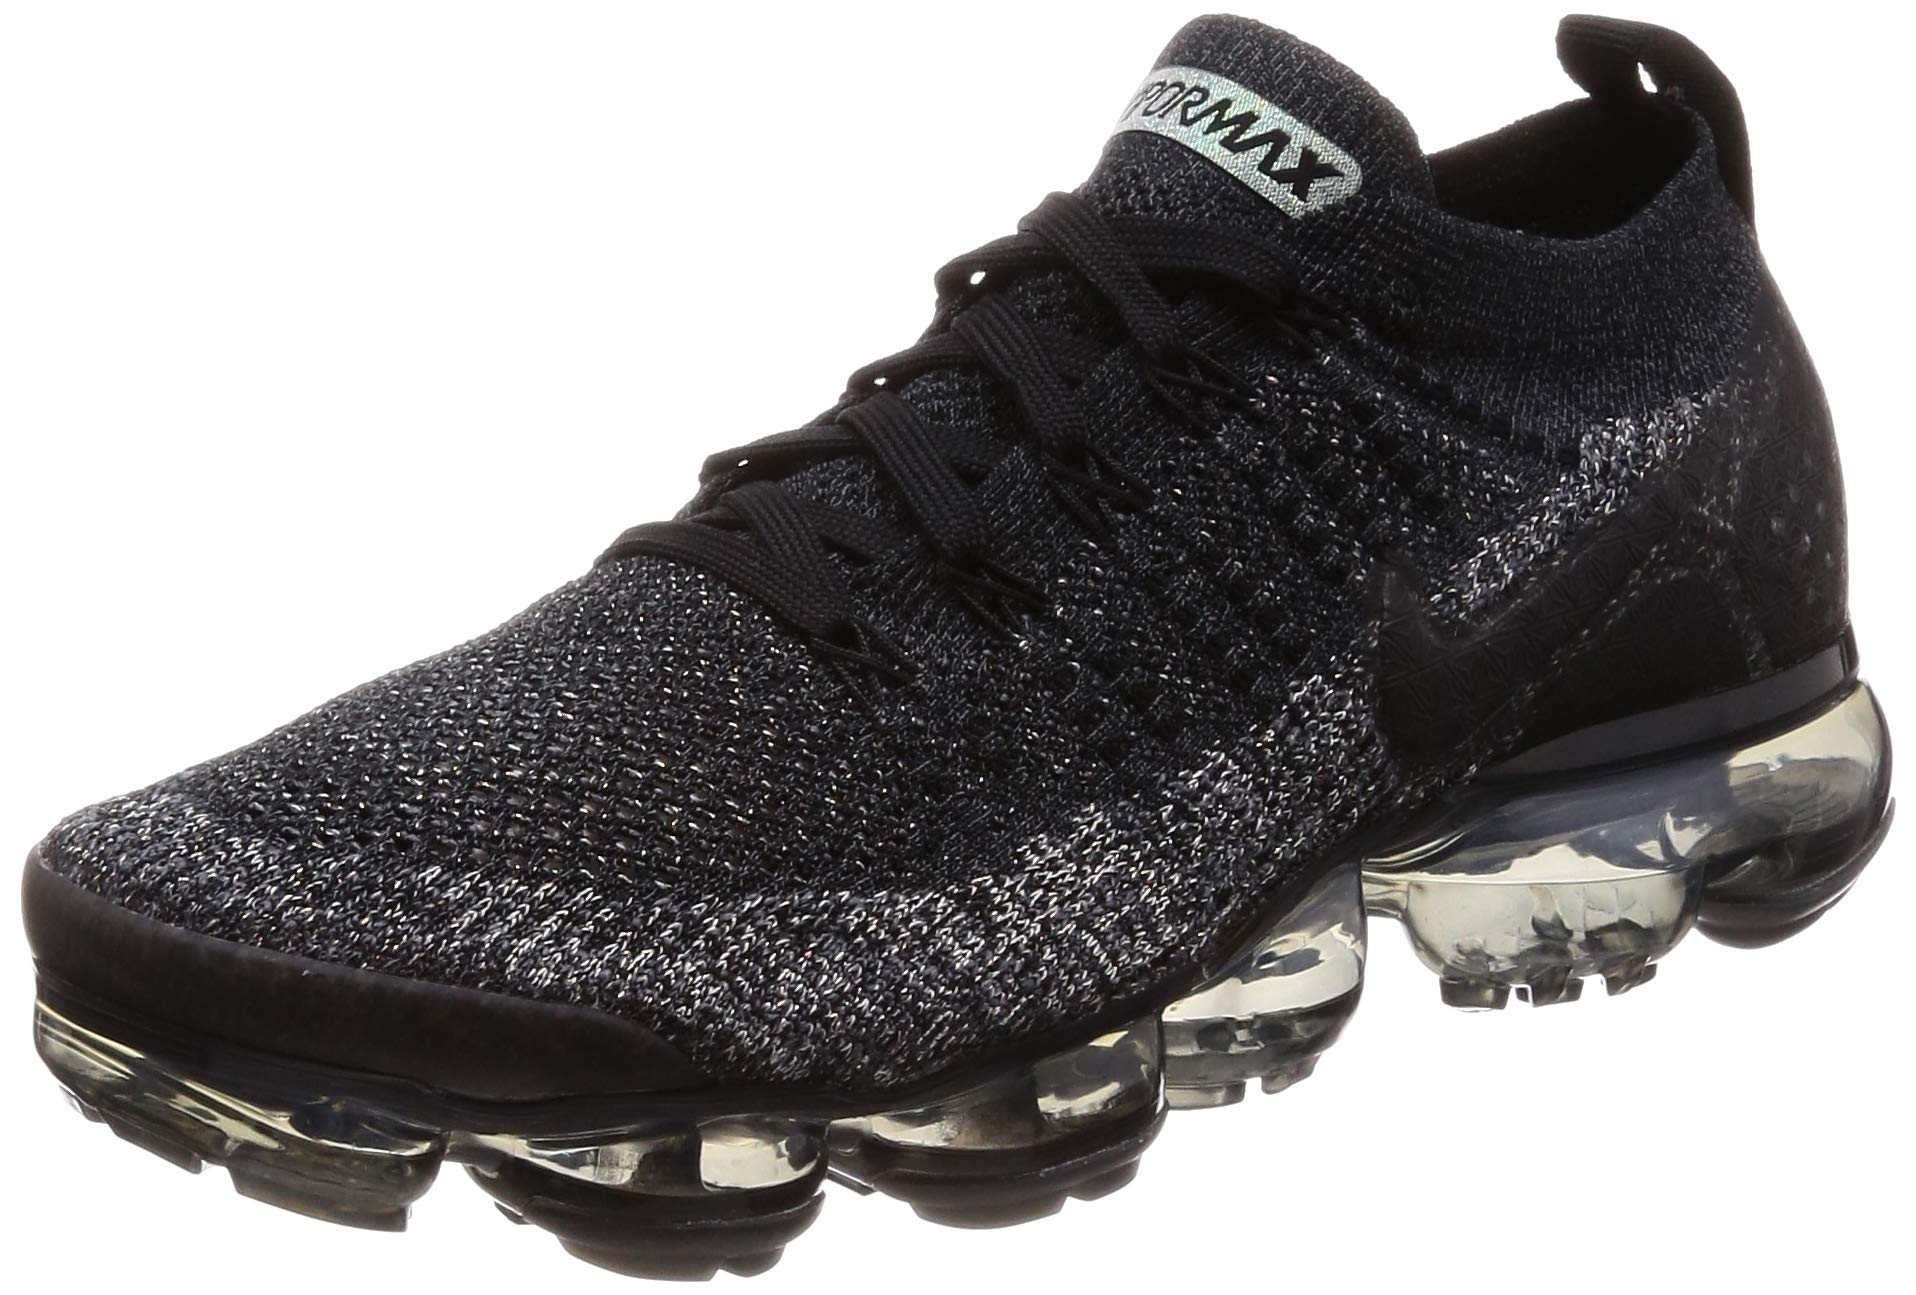 8a373a74cc5 Galleon - Nike Men's Air Vapormax Flyknit 2 Running Shoes (9.5, Black/ Anthracite)